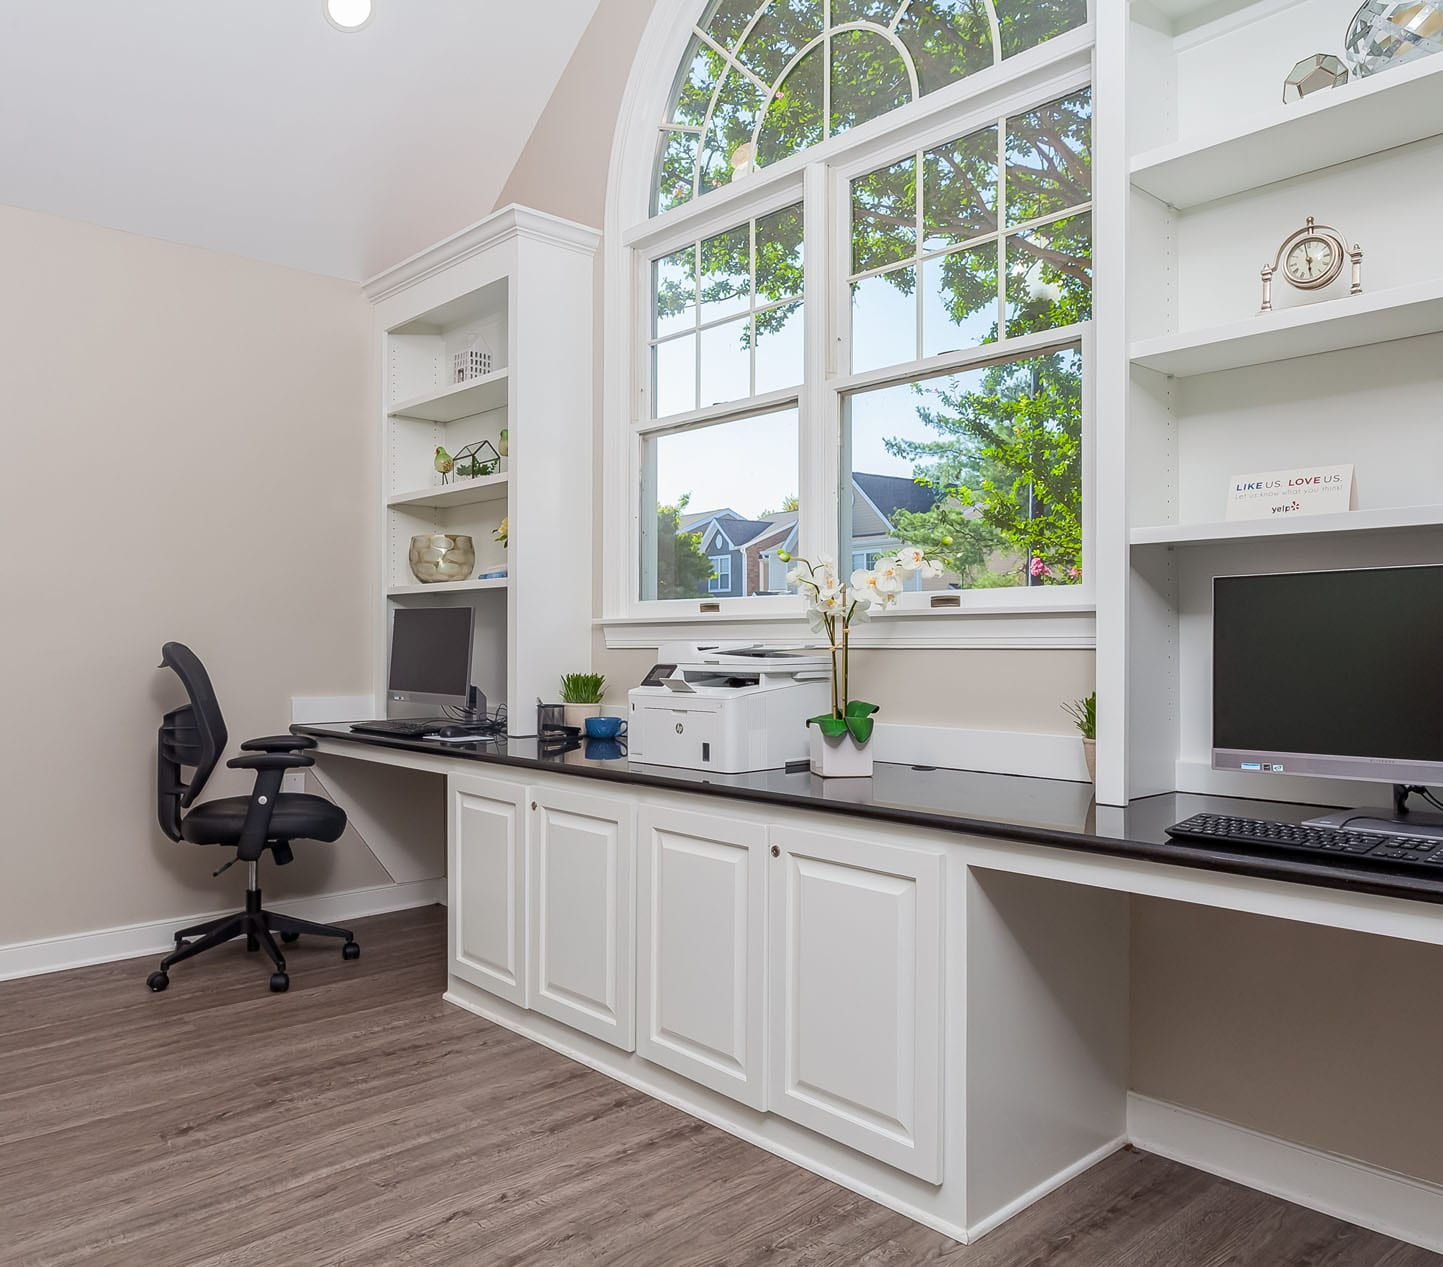 Photos And Tours Of Gayton Pointe Townhomes